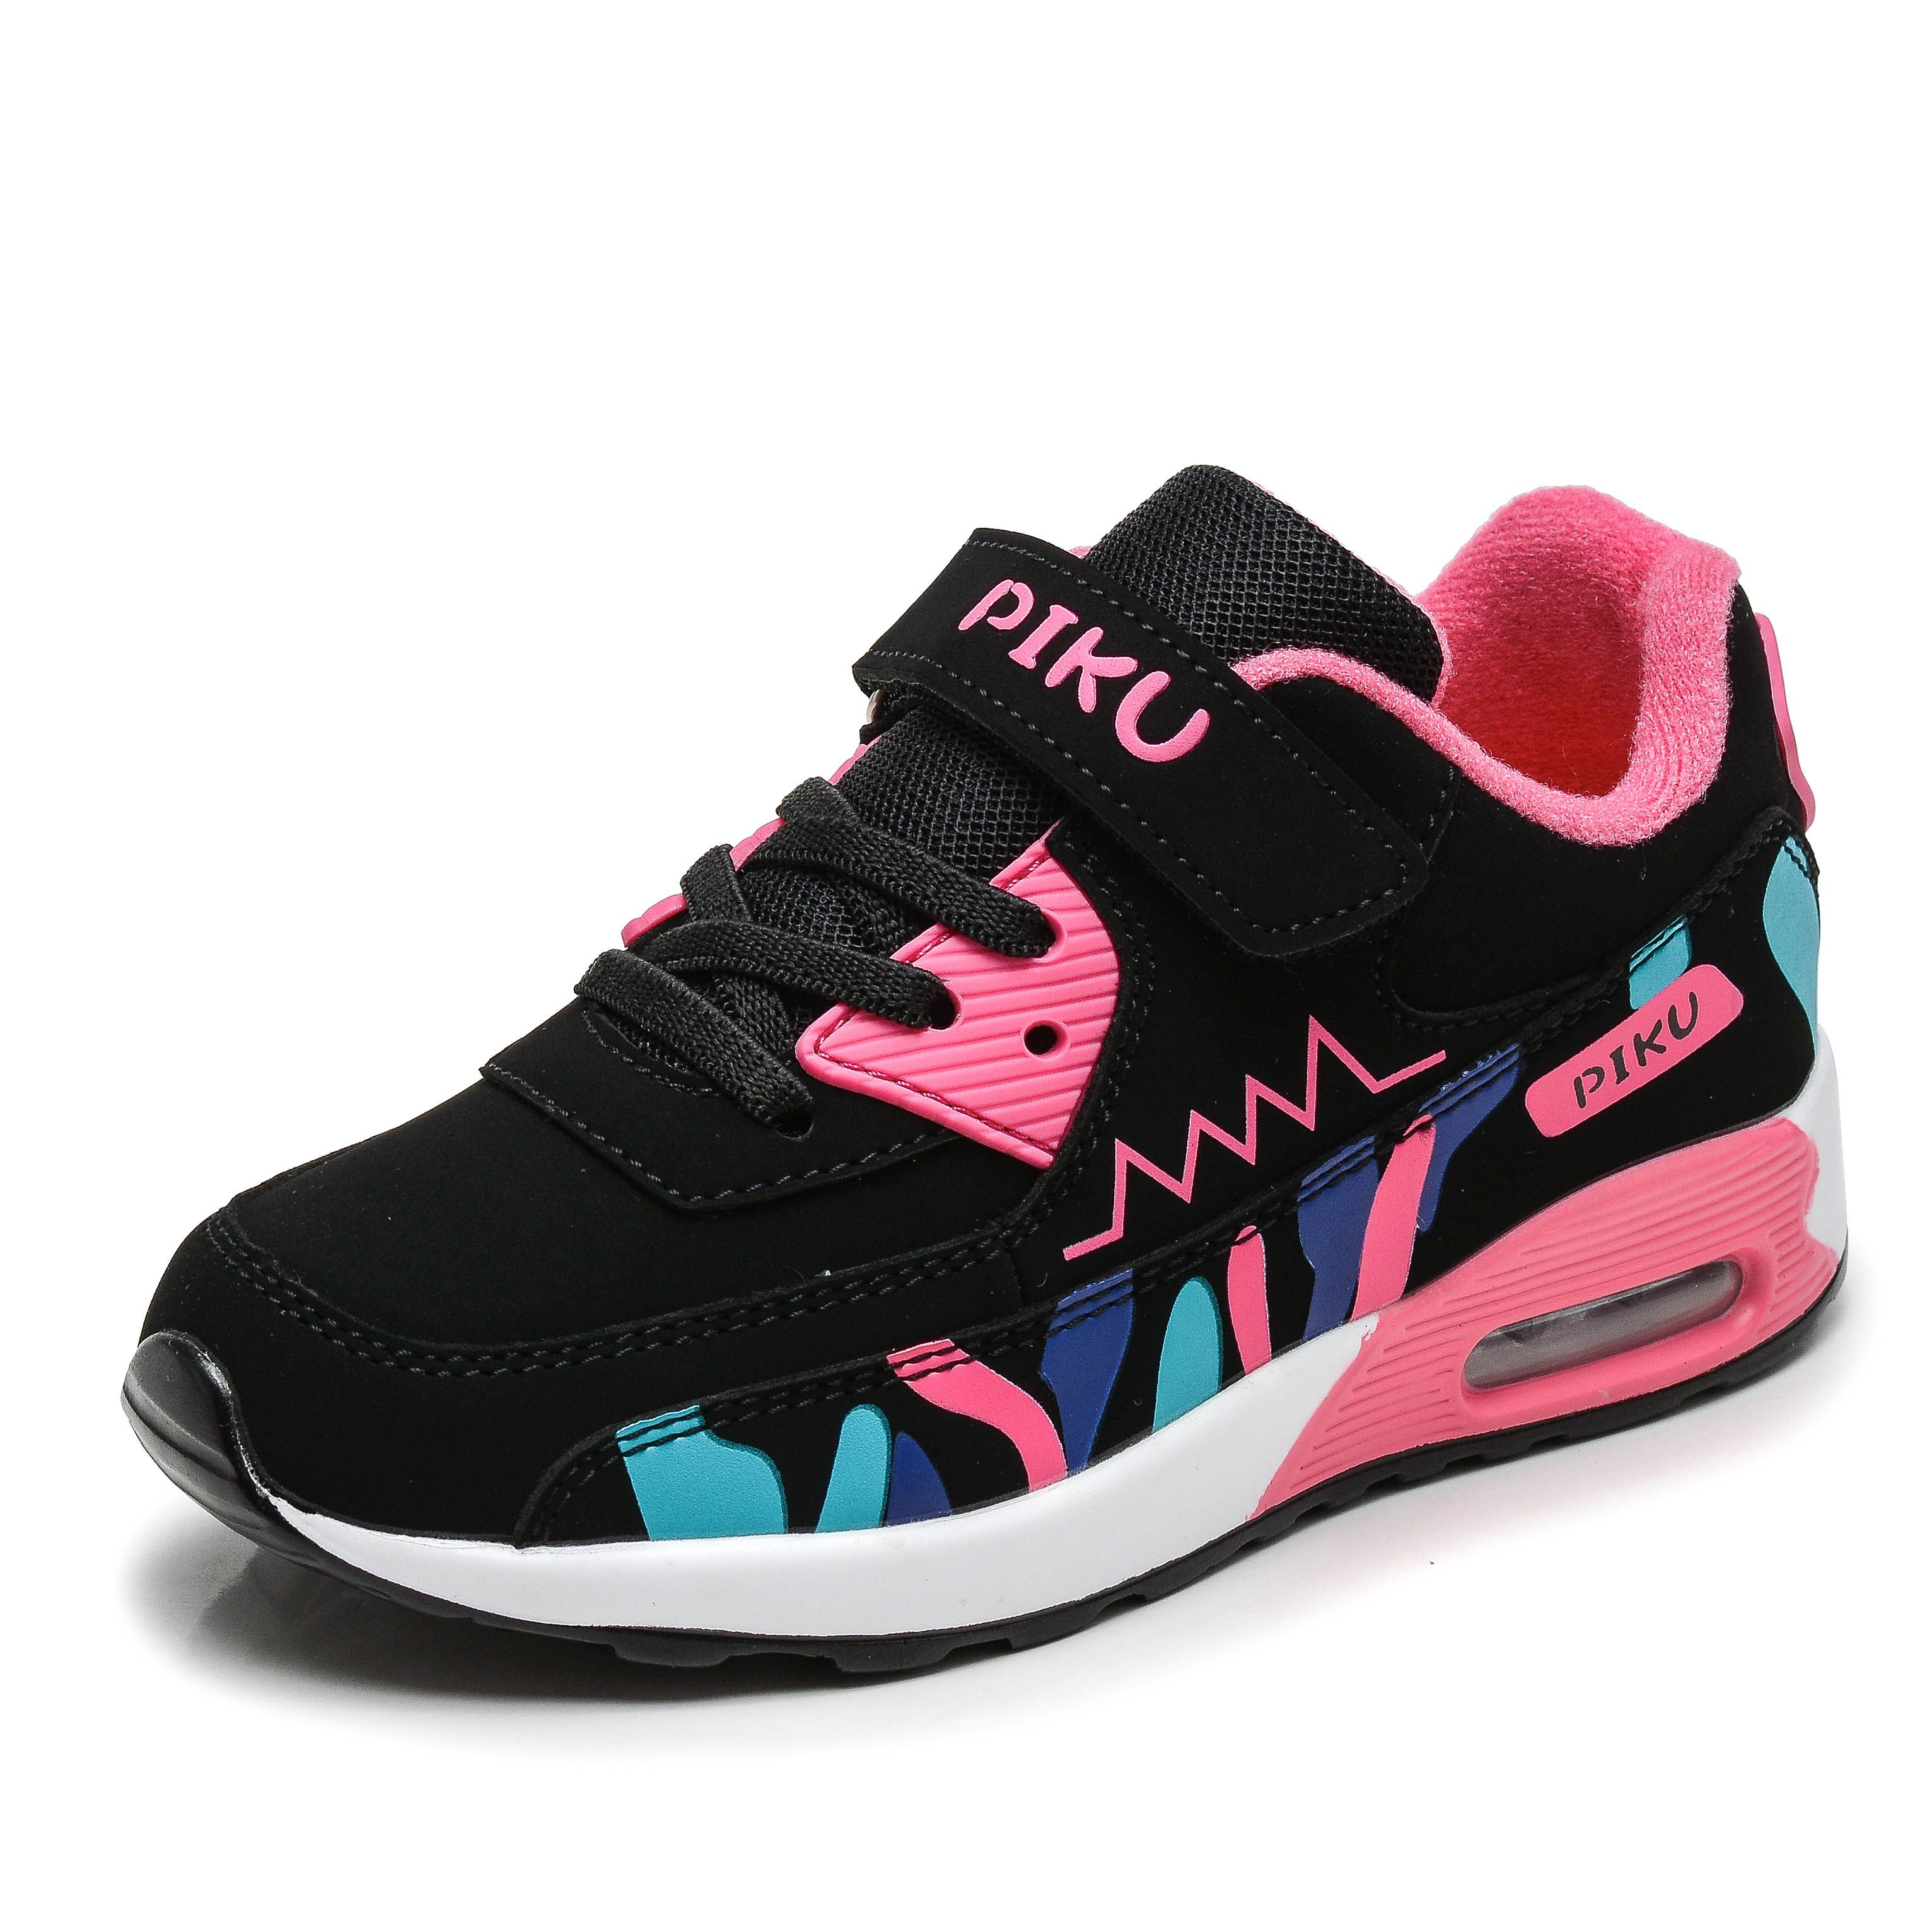 2018New children's casual sports running shoes brand